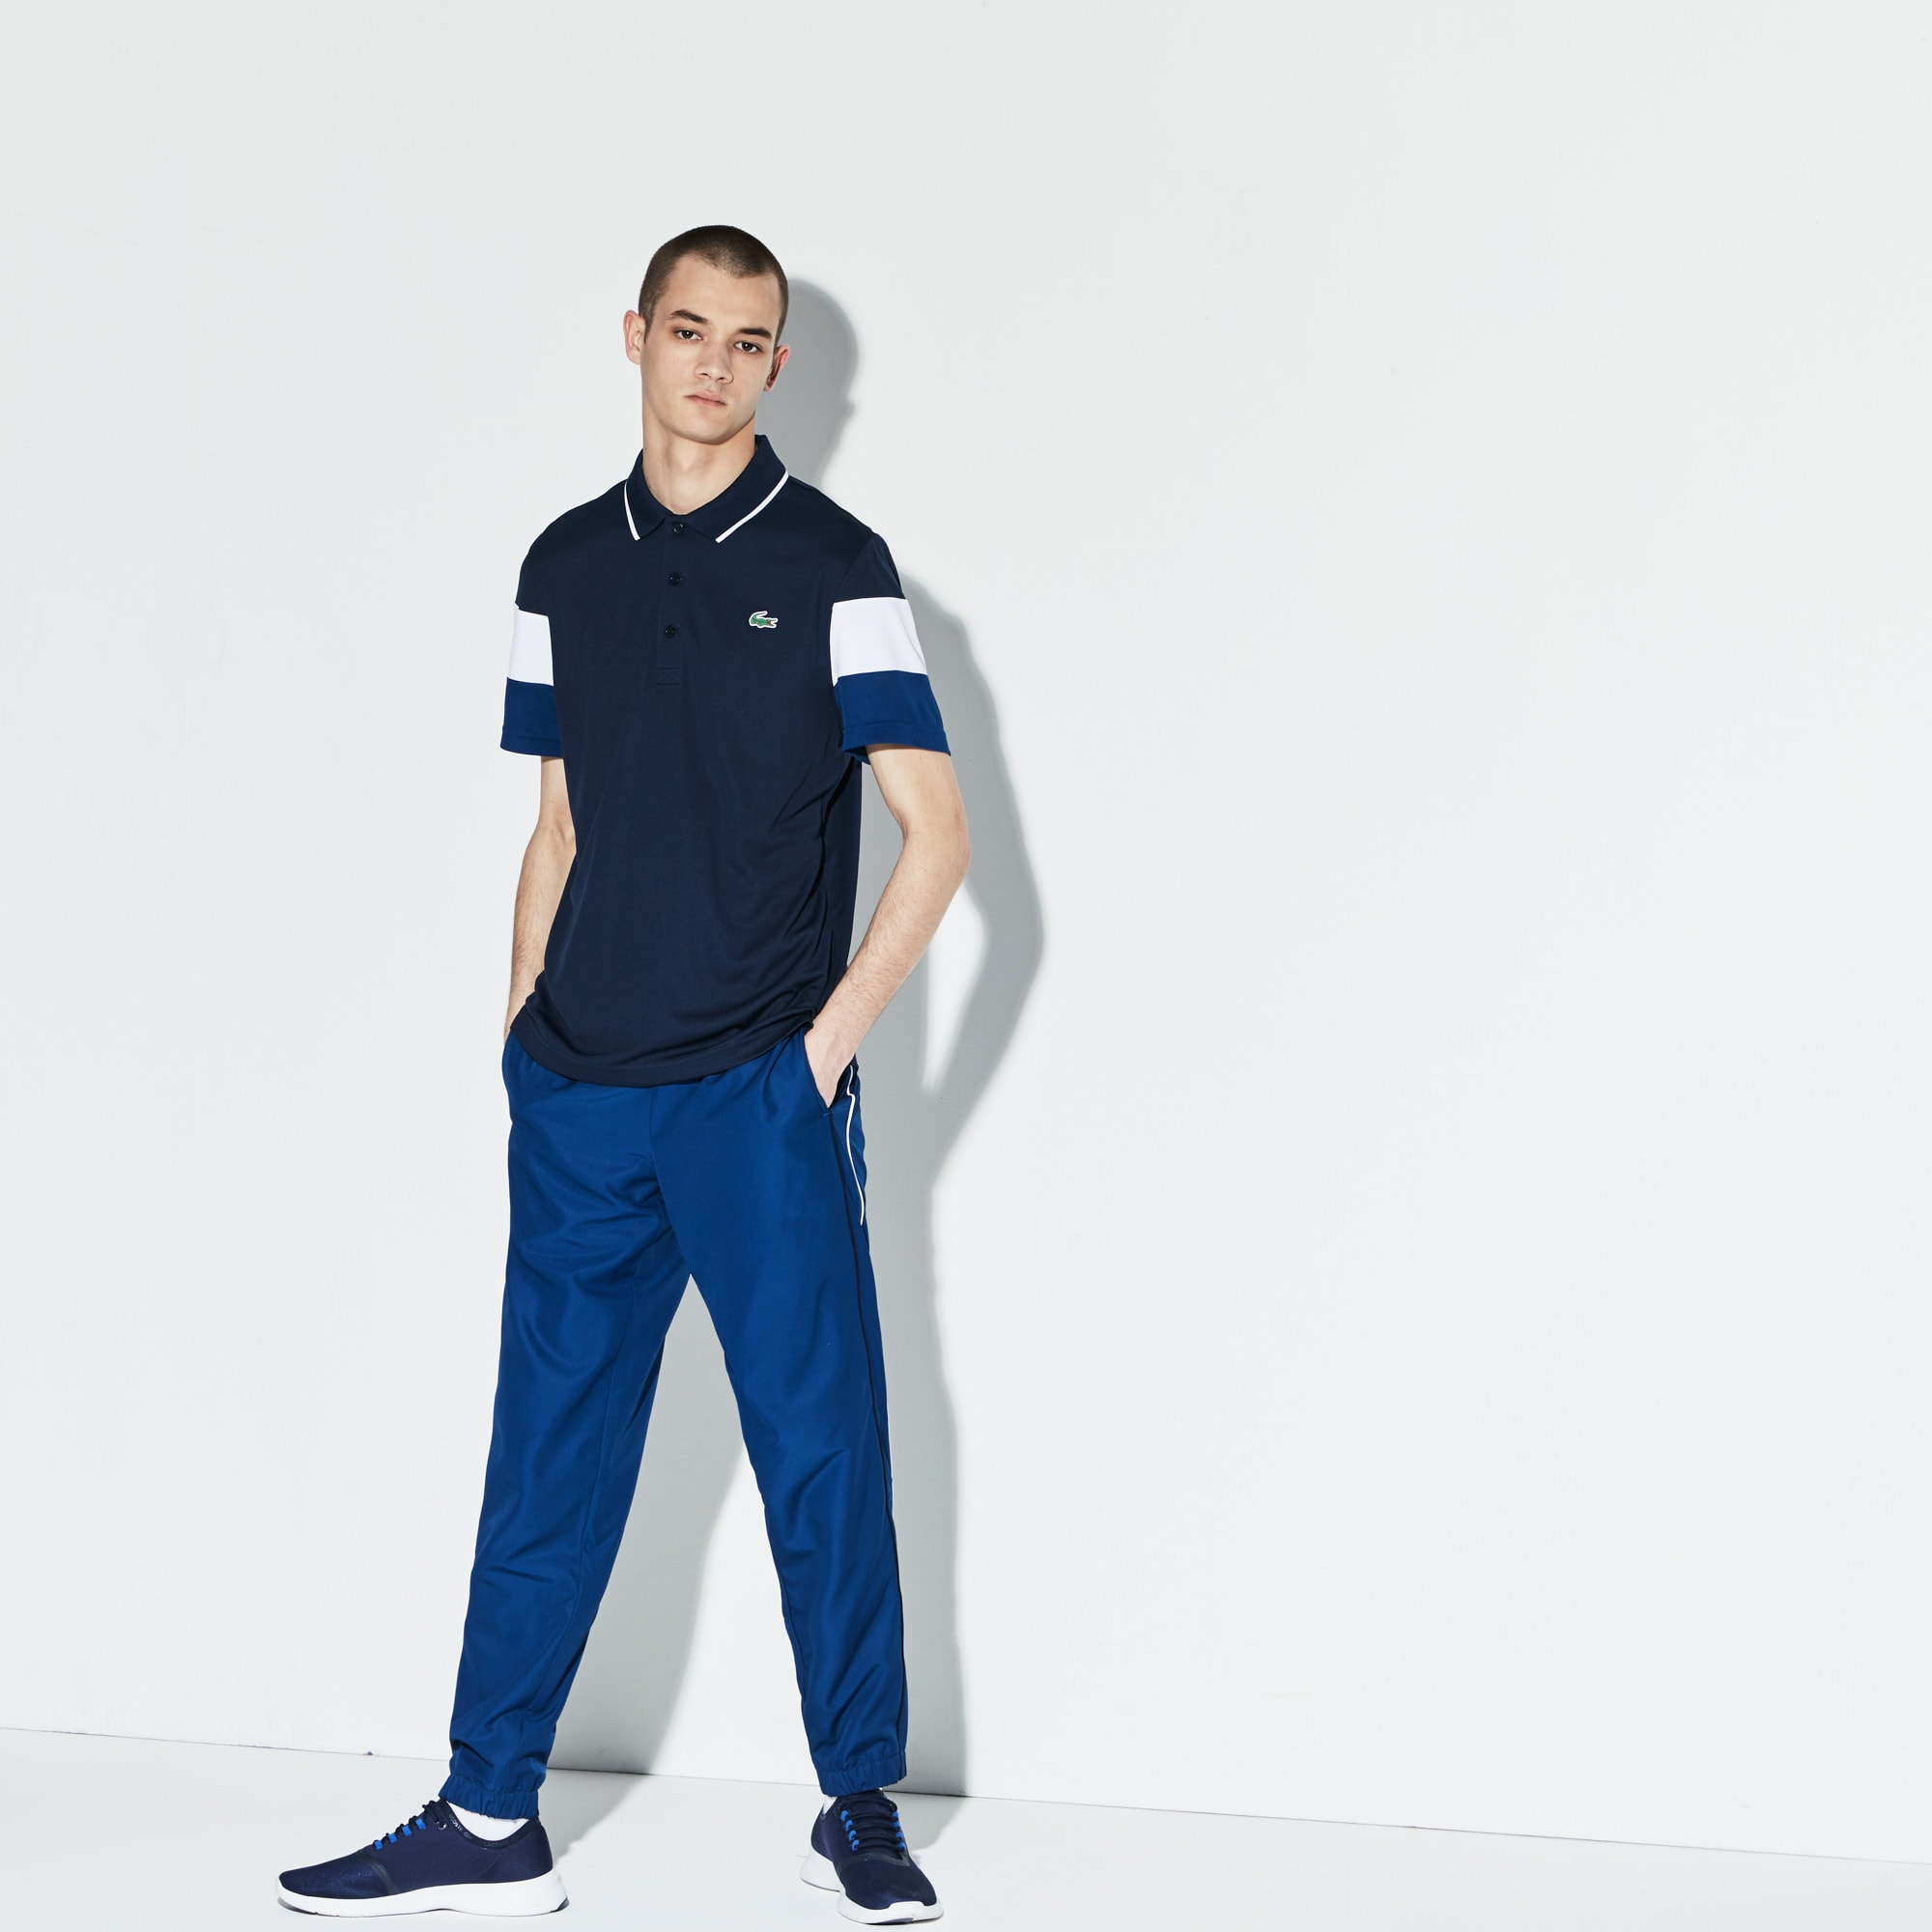 Men's Lacoste SPORT Piped Taffeta Sweatpants